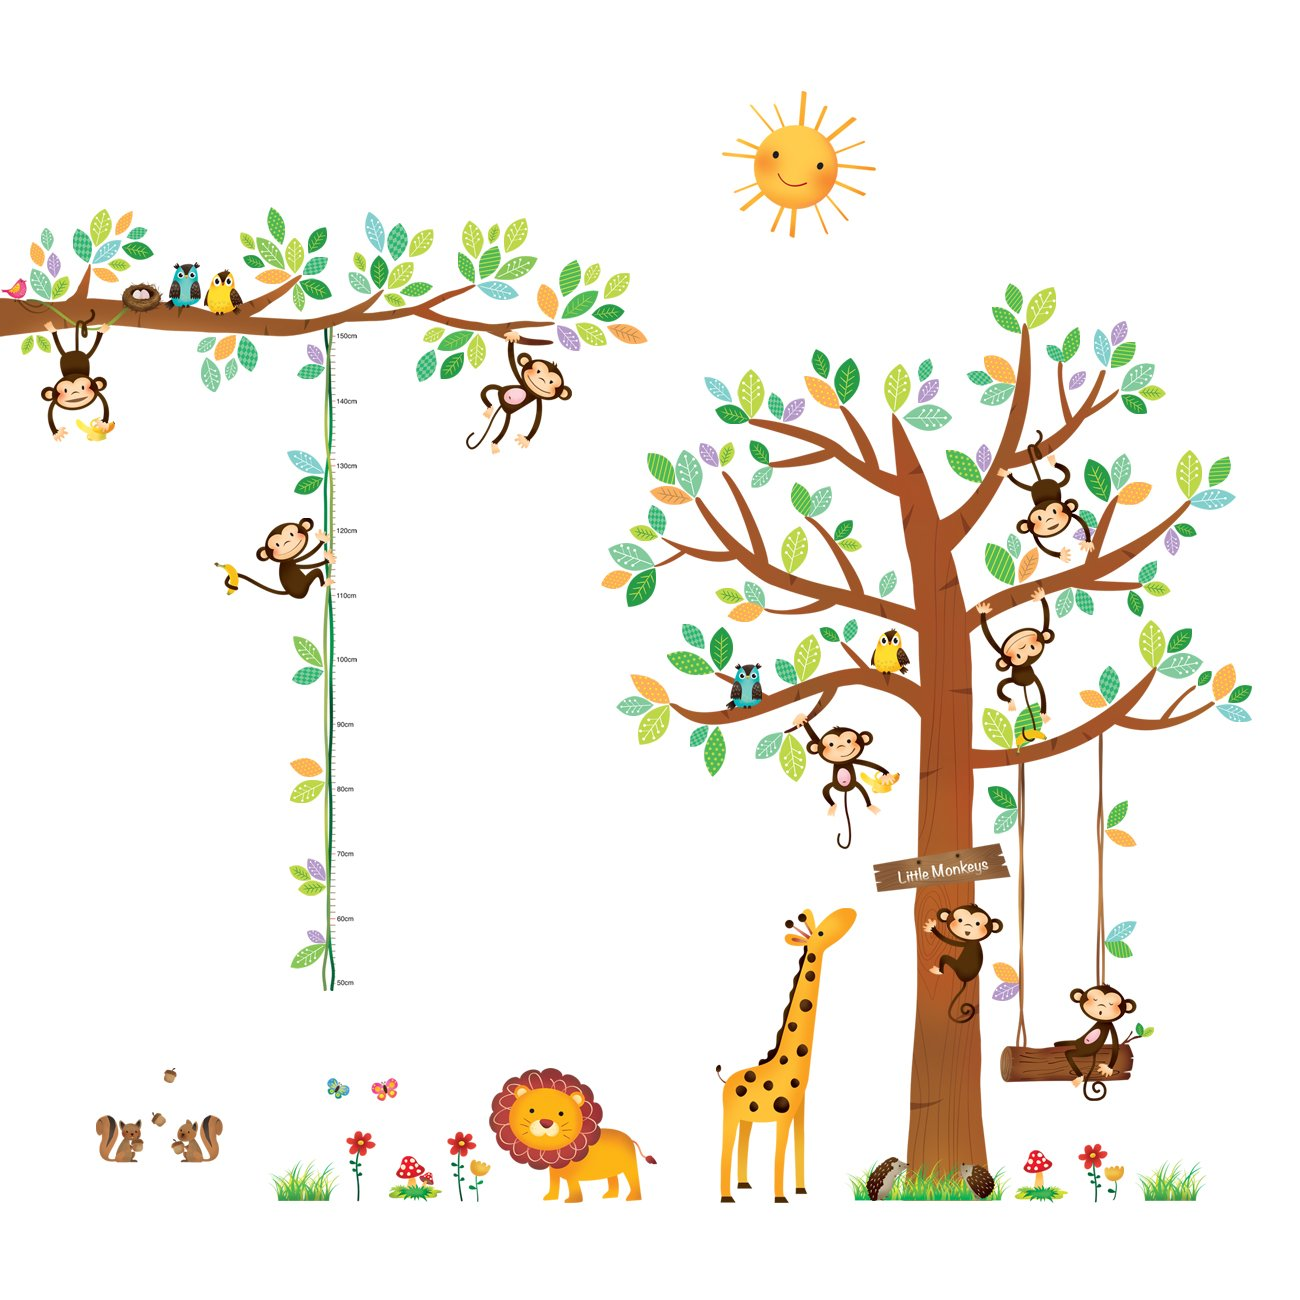 DECOWALL DA-1401P1402 8 Little Monkeys Tree and Height Chart Kids Wall Decals Wall Stickers Peel and Stick Removable Wall Stickers for Kids Nursery Bedroom Living Room by Decowall